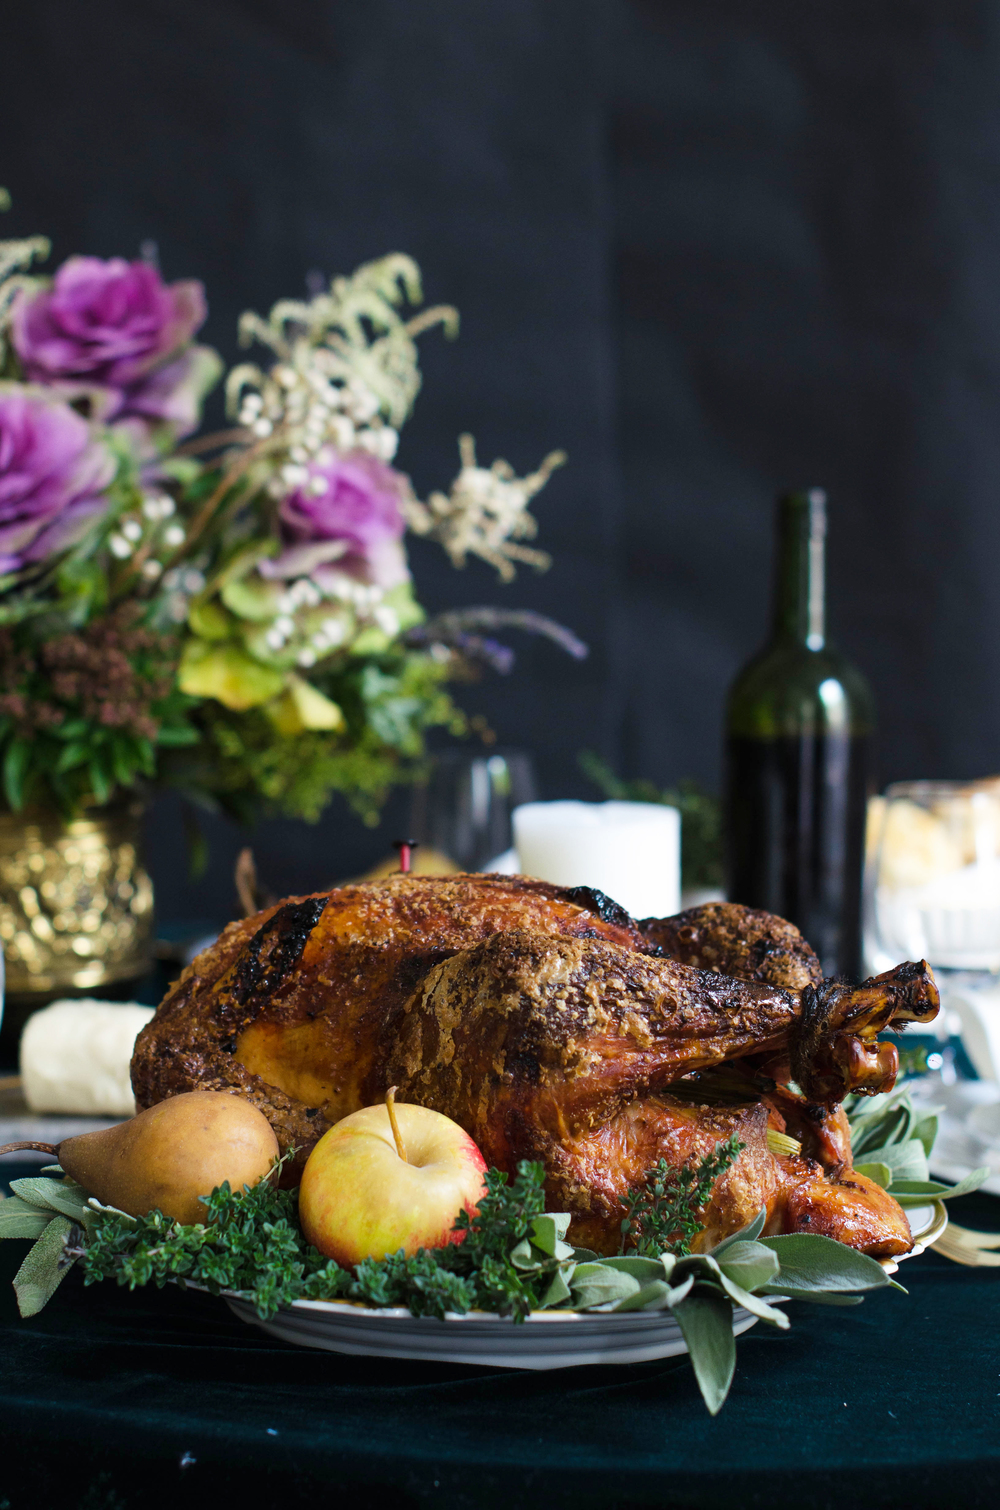 Maple Glazed Turkey garnished with fresh herbs and fruit